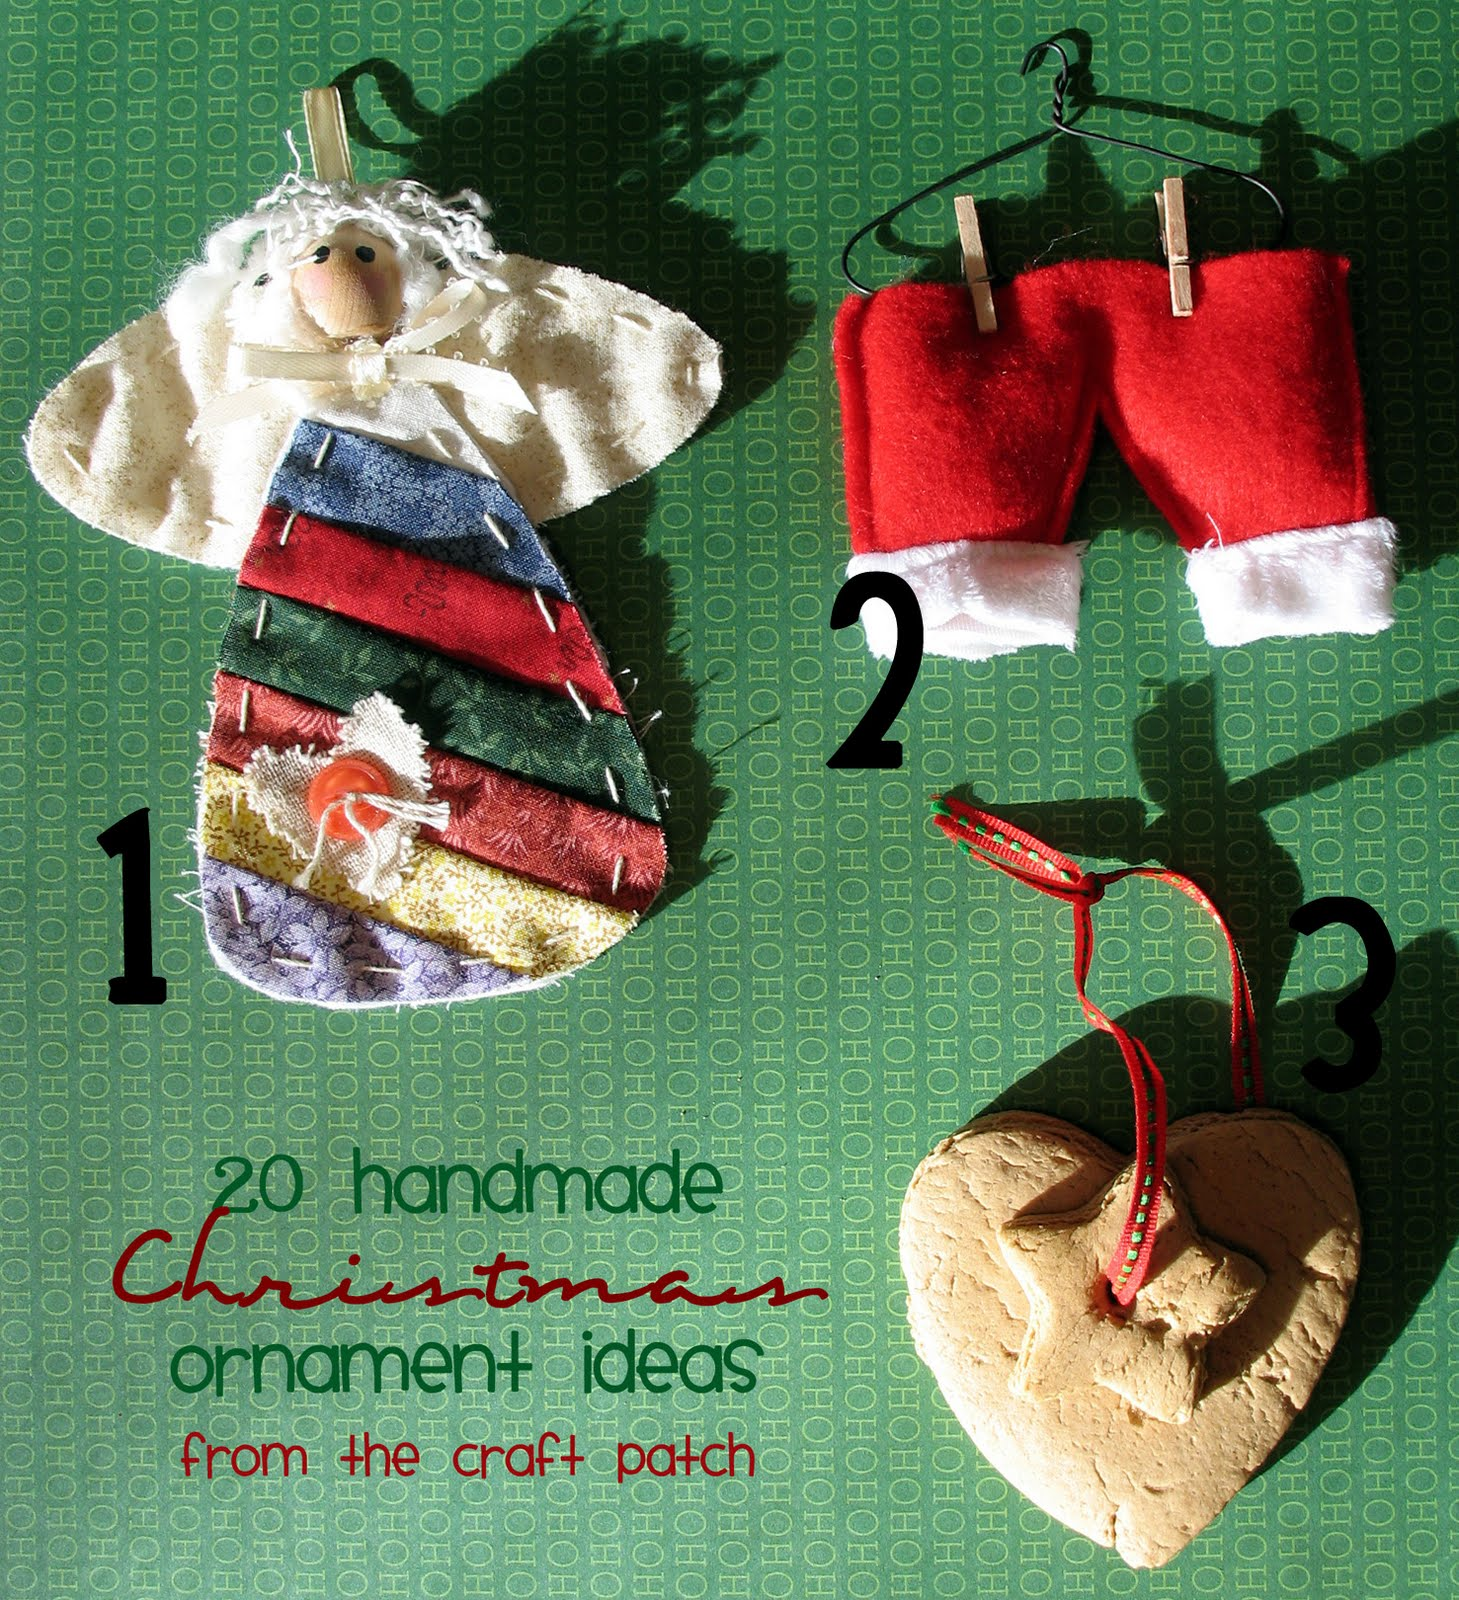 Twenty Handmade Christmas Ornament Ideas ...